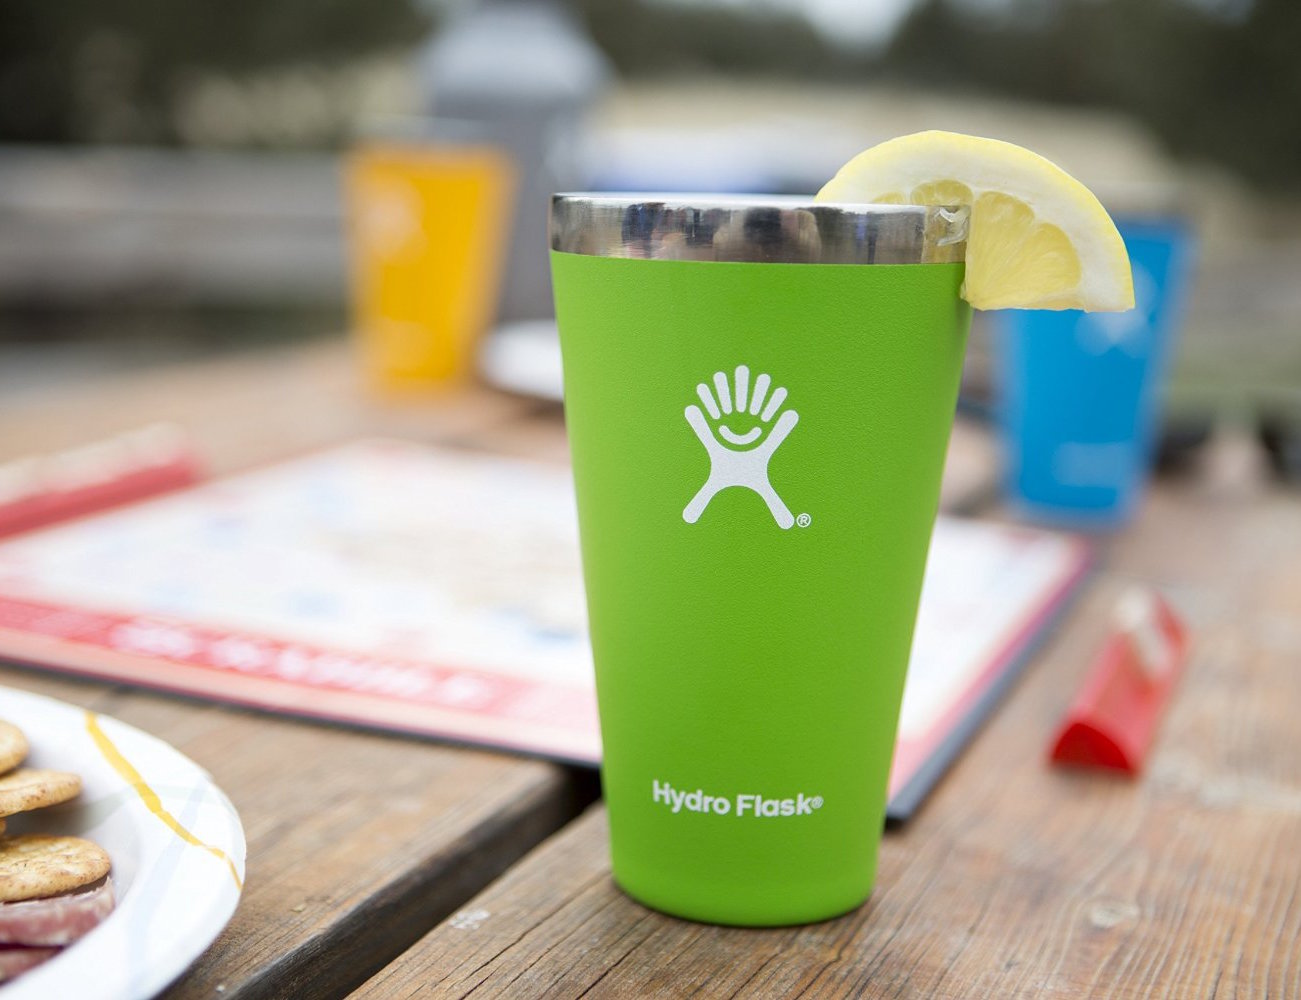 Hydro Flask True Pint Vacuum Insulated Tumbler